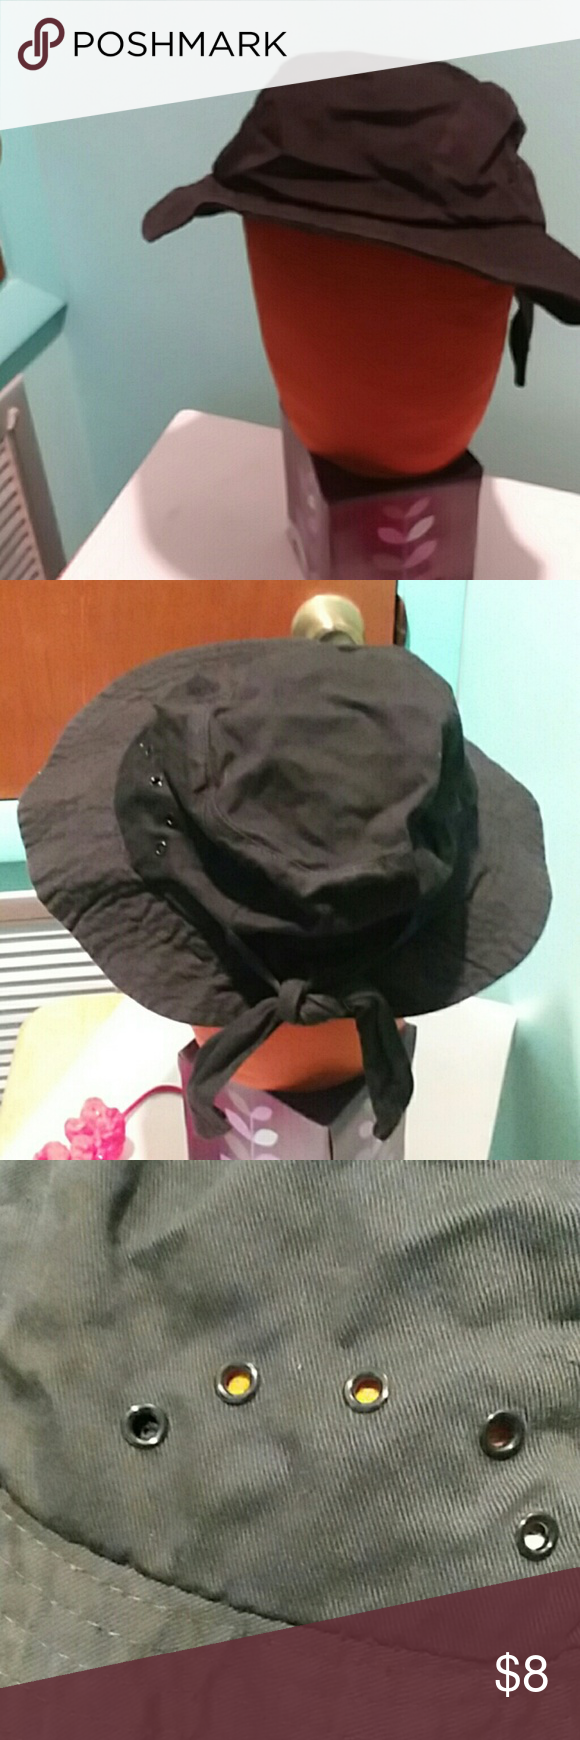 Bow Tie Hat Hats Clothes Design Women Shopping